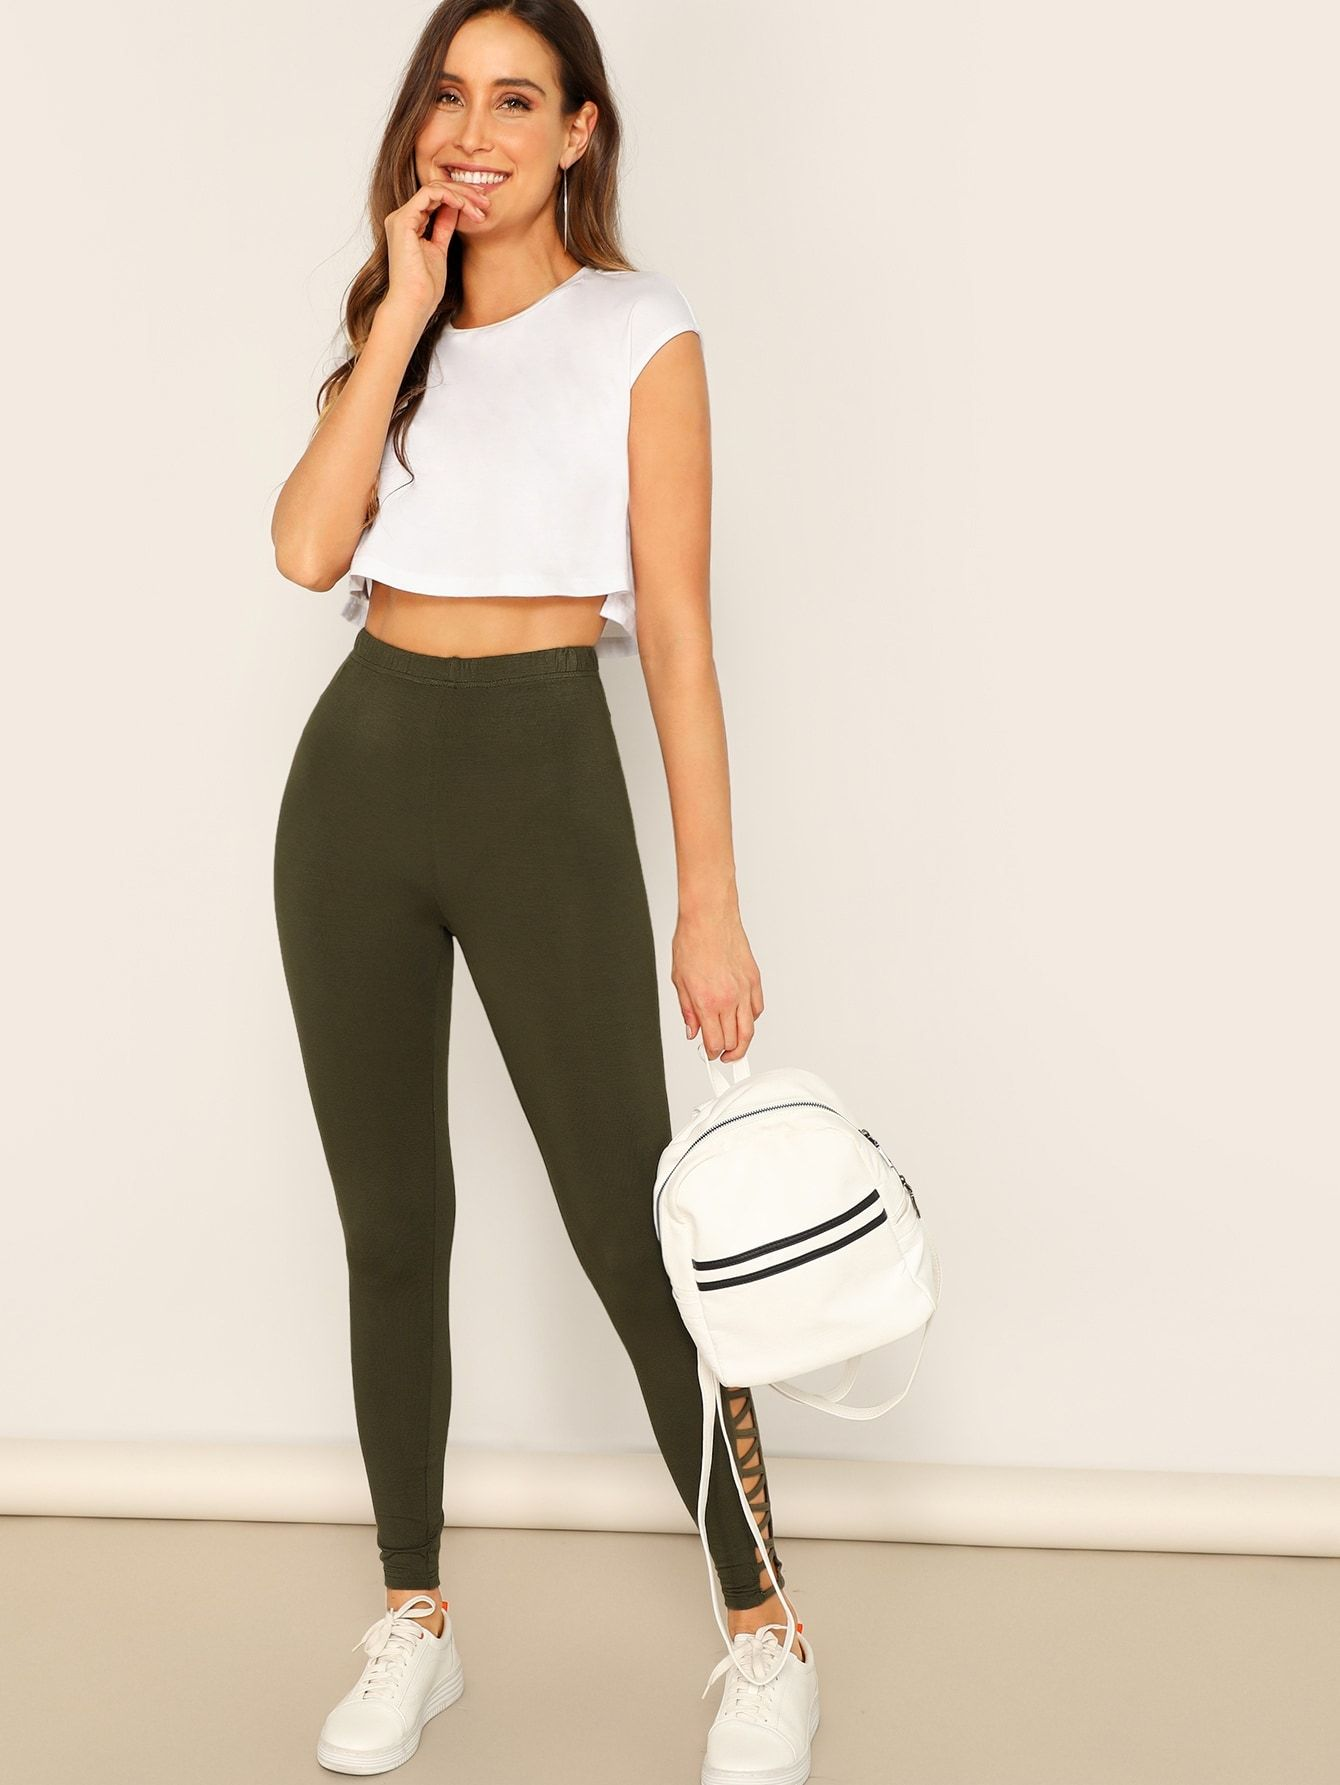 78139c4076f51 Sporty Regular Cut Out Plain Army Green Long Length Cut-out Side Solid  Leggings